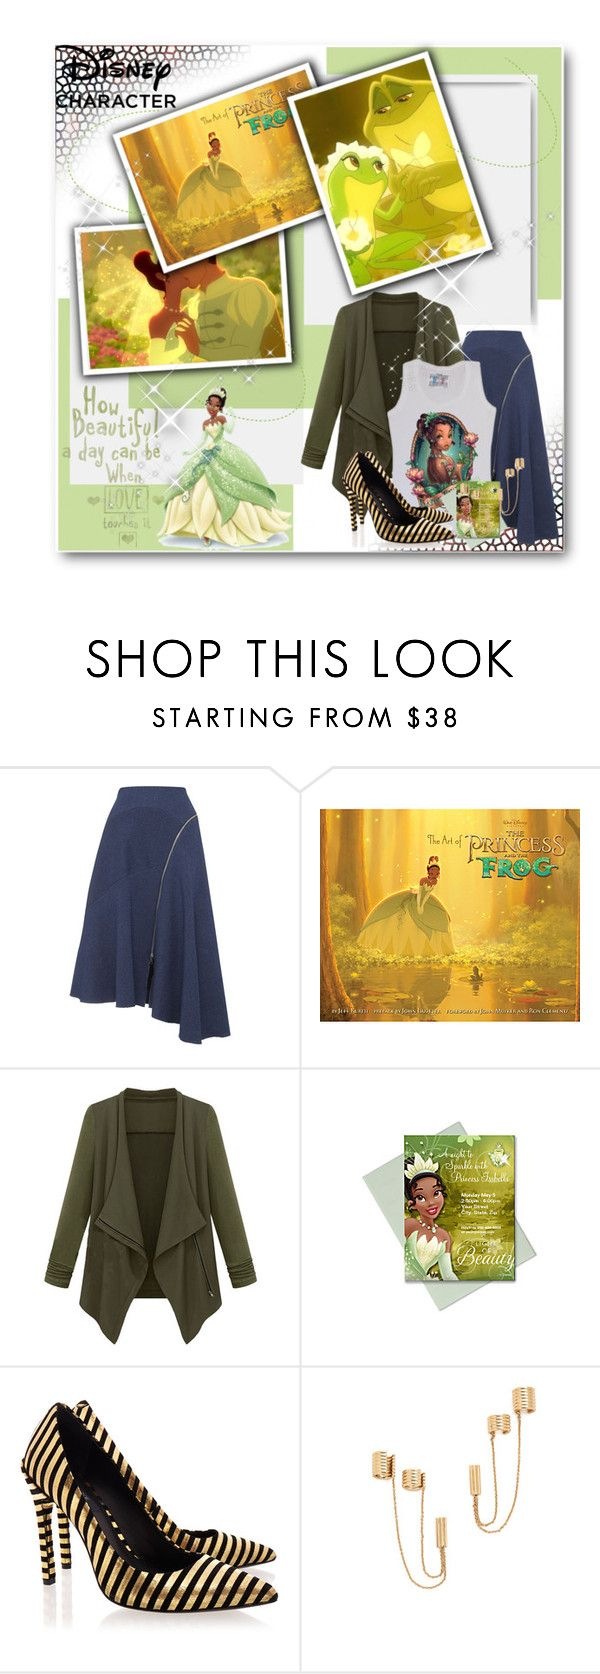 """""""Disney's Princess Tiana"""" by eclectic-chic ❤ liked on Polyvore featuring Whistles, WithChic, Disney, Rachel Zoe, romantic, disney, Disneyprincess and disneycharacter"""